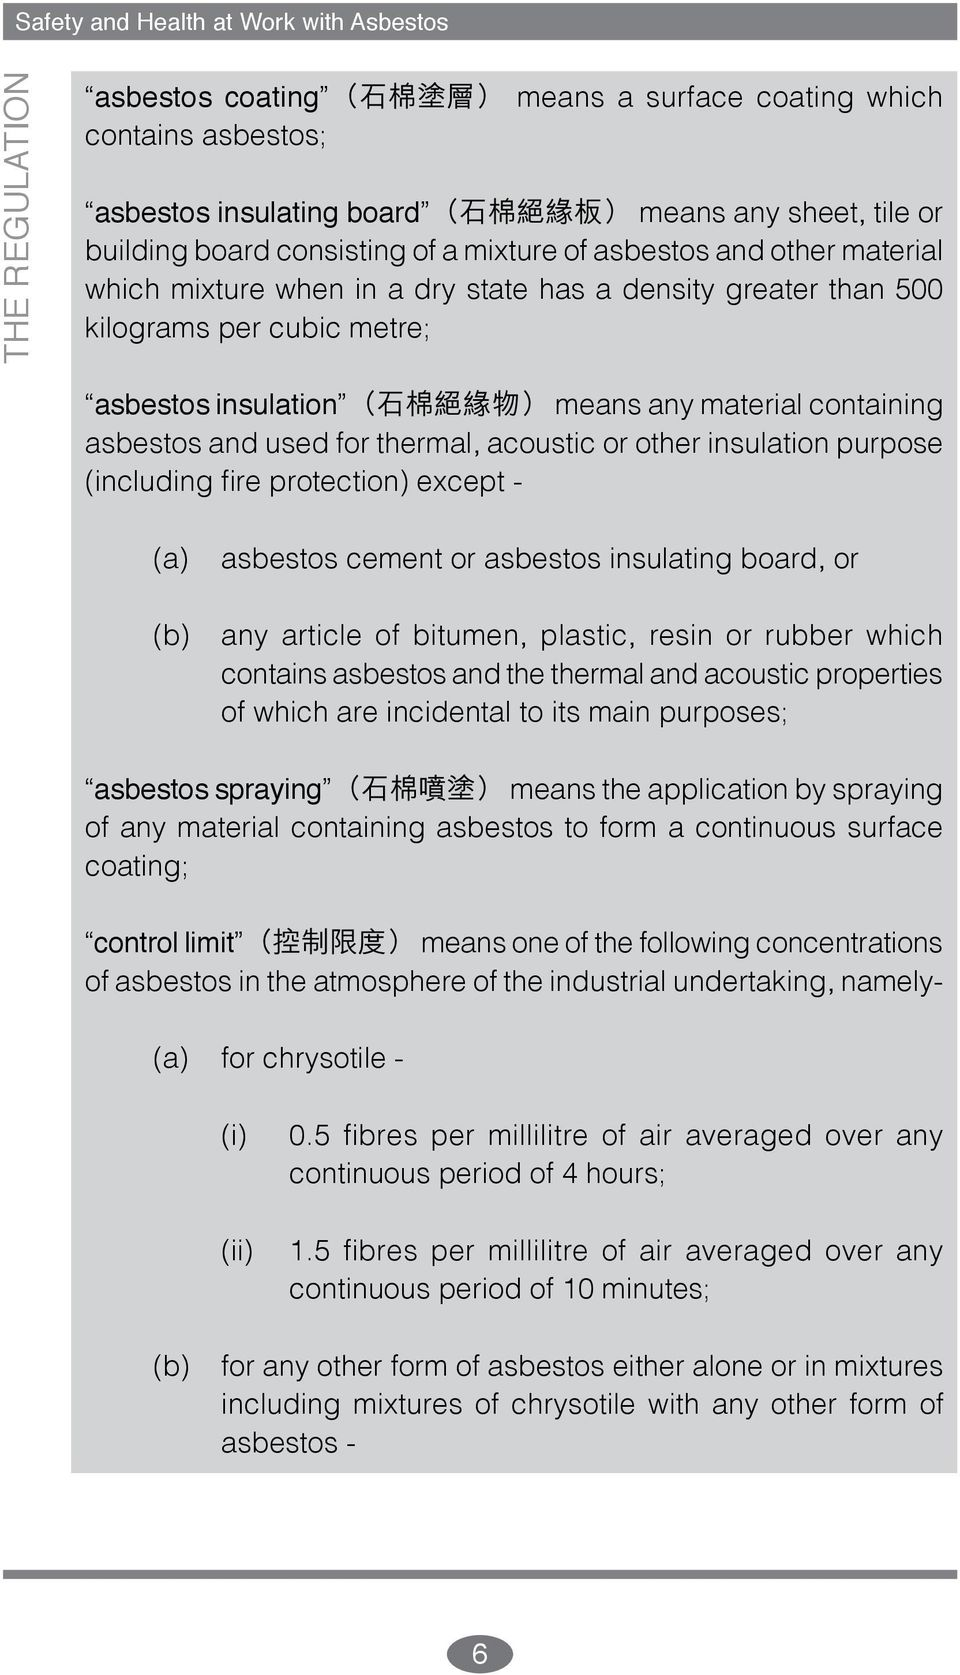 means any material containing asbestos and used for thermal, acoustic or other insulation purpose (including fire protection) except - (a) asbestos cement or asbestos insulating board, or (b) any